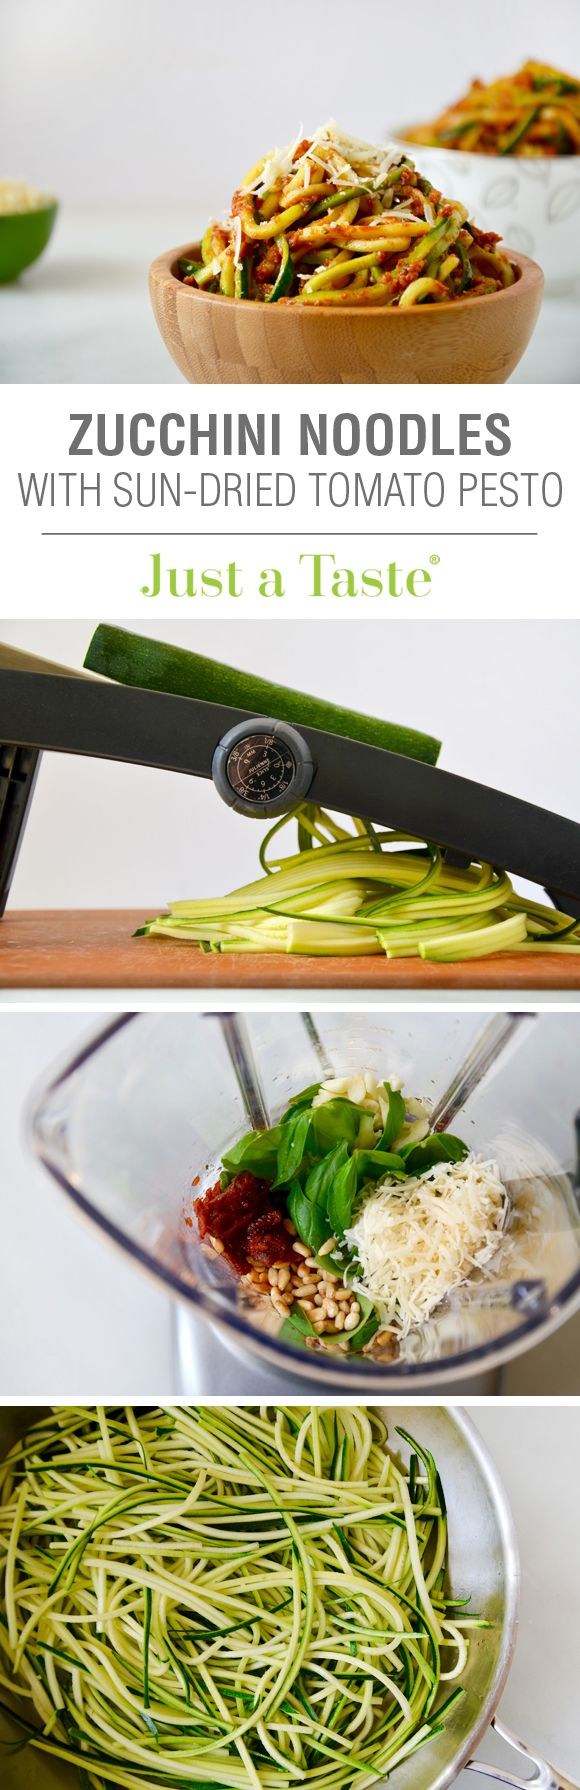 Zucchini Noodles with Sun-Dried Tomato Pesto #recipe from @Just a Taste | Kelly Senyei